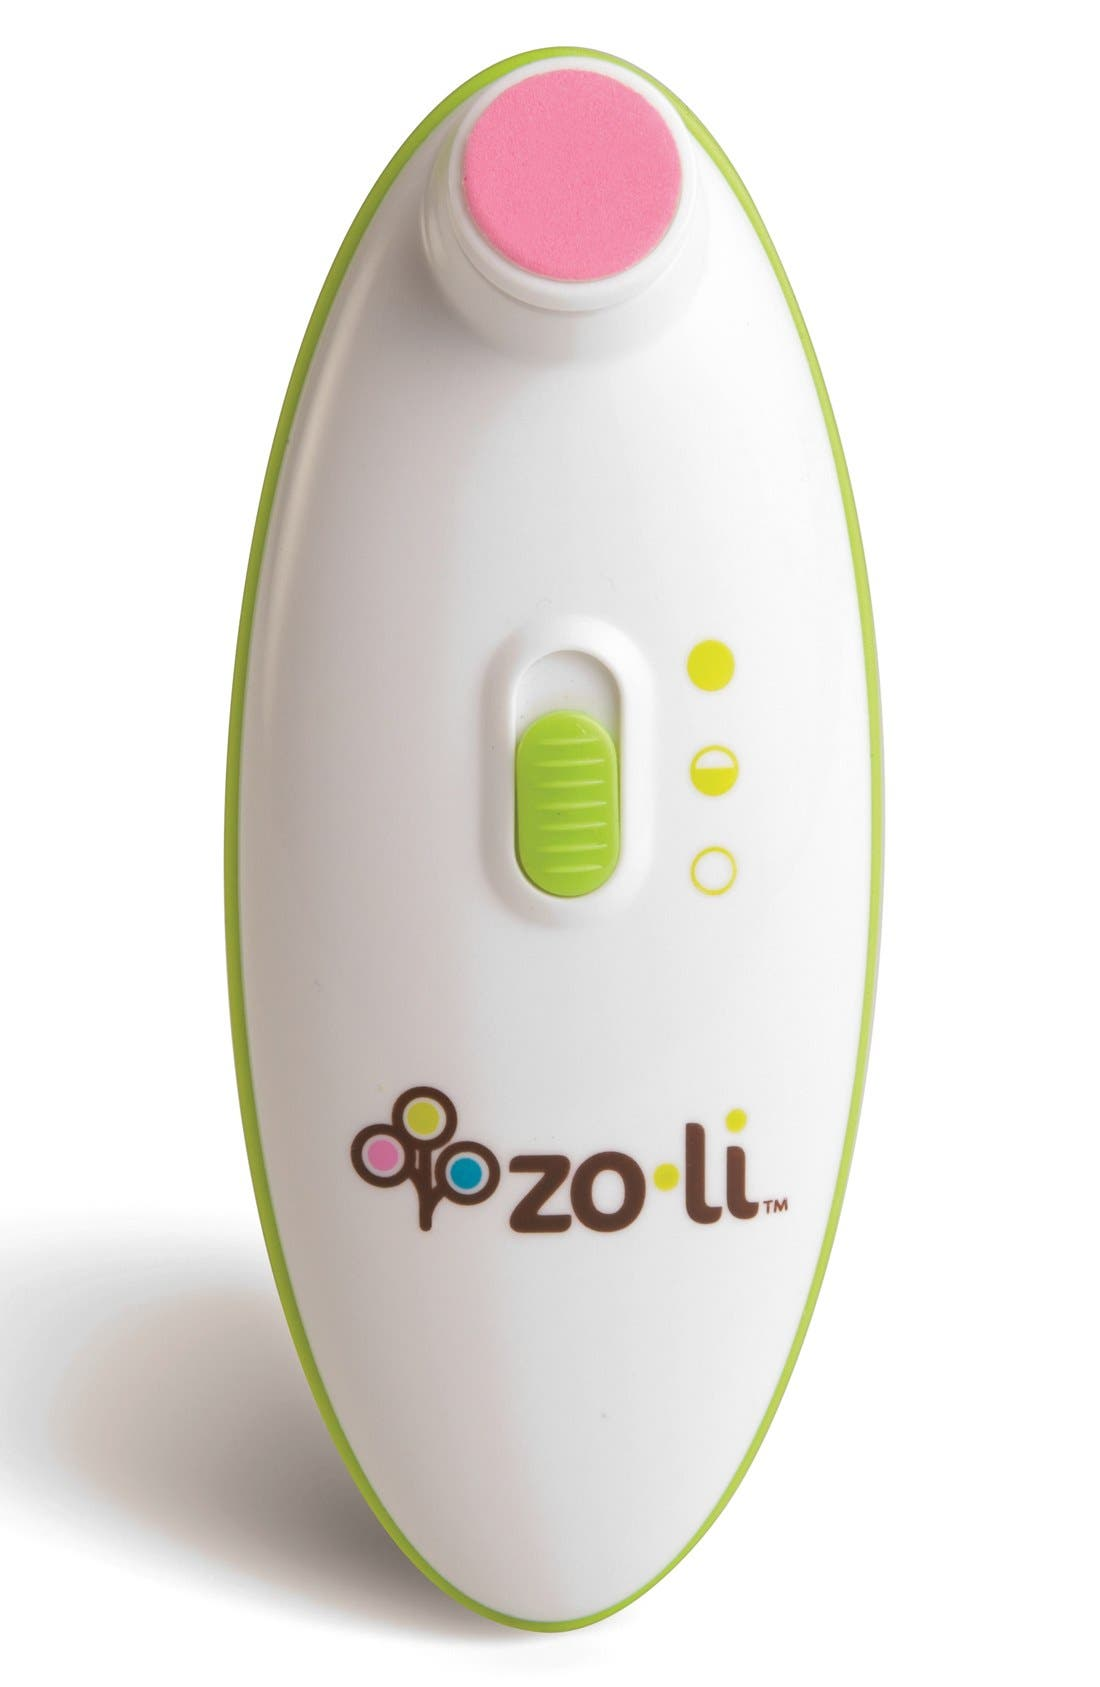 ZoLi 'BUZZ B.™' Electric Nail Trimmer